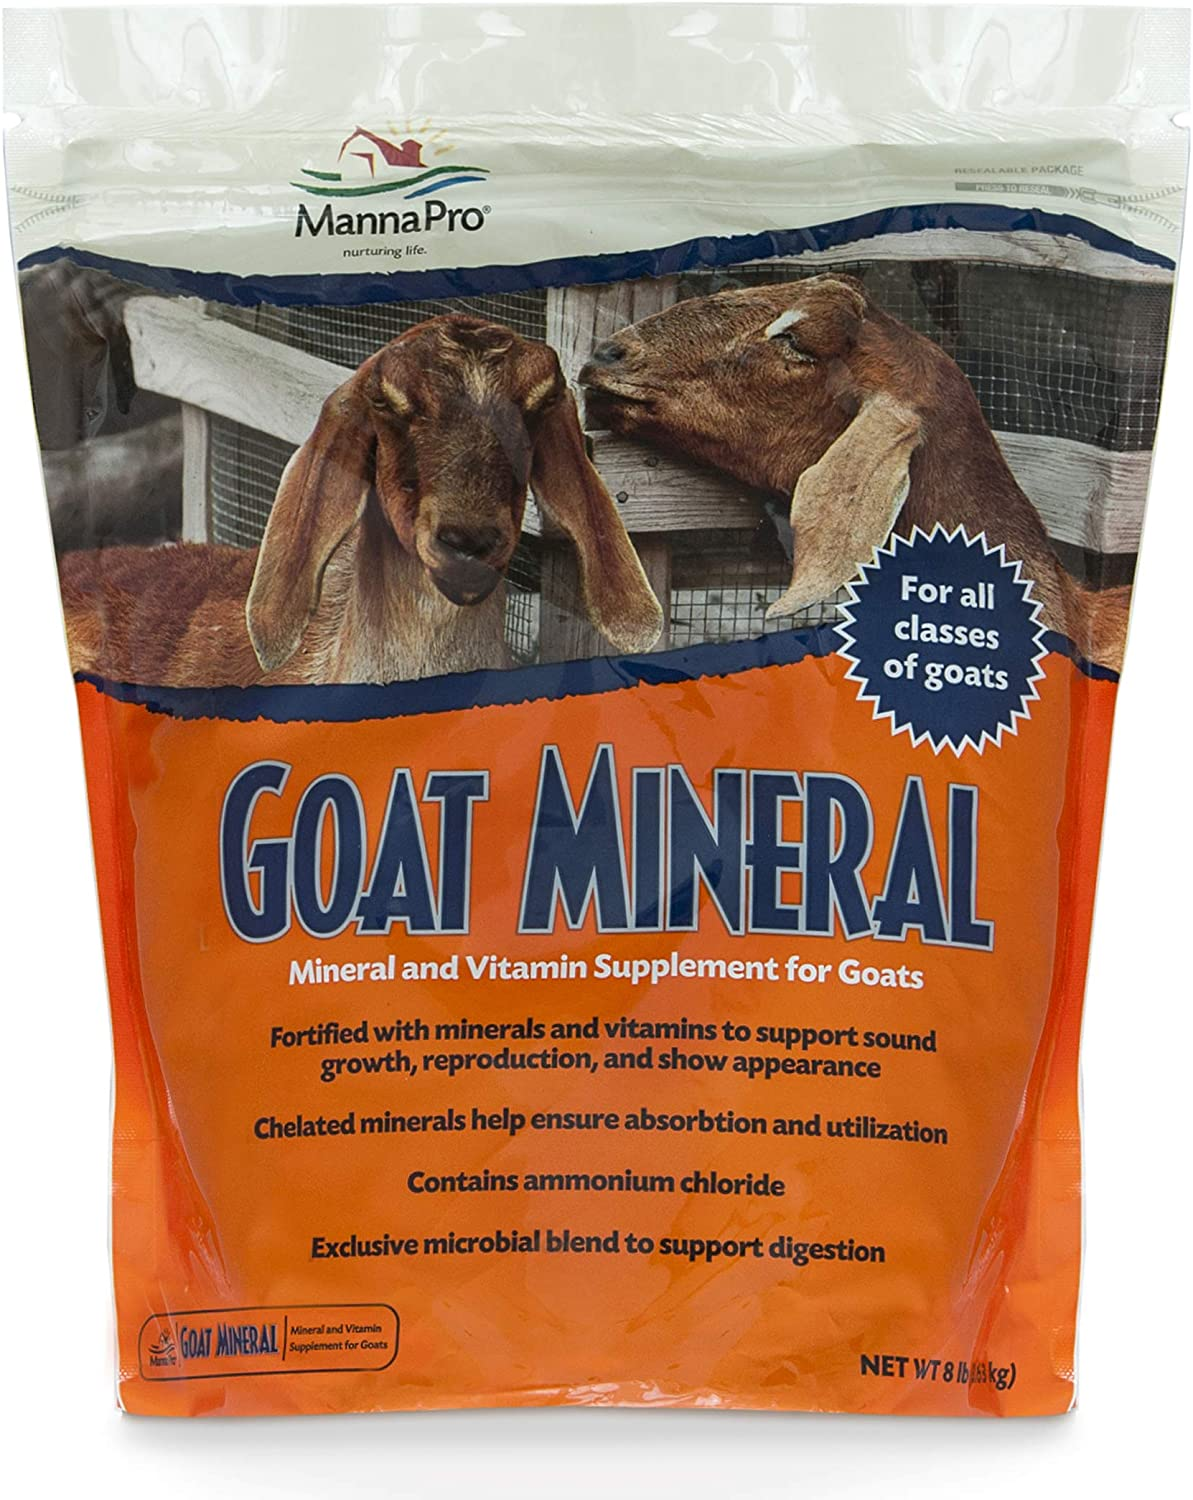 Manna Pro Goat Mineral | Made with Viatimins & Minerals to Support Growth | 8 Pounds: Pet Supplies